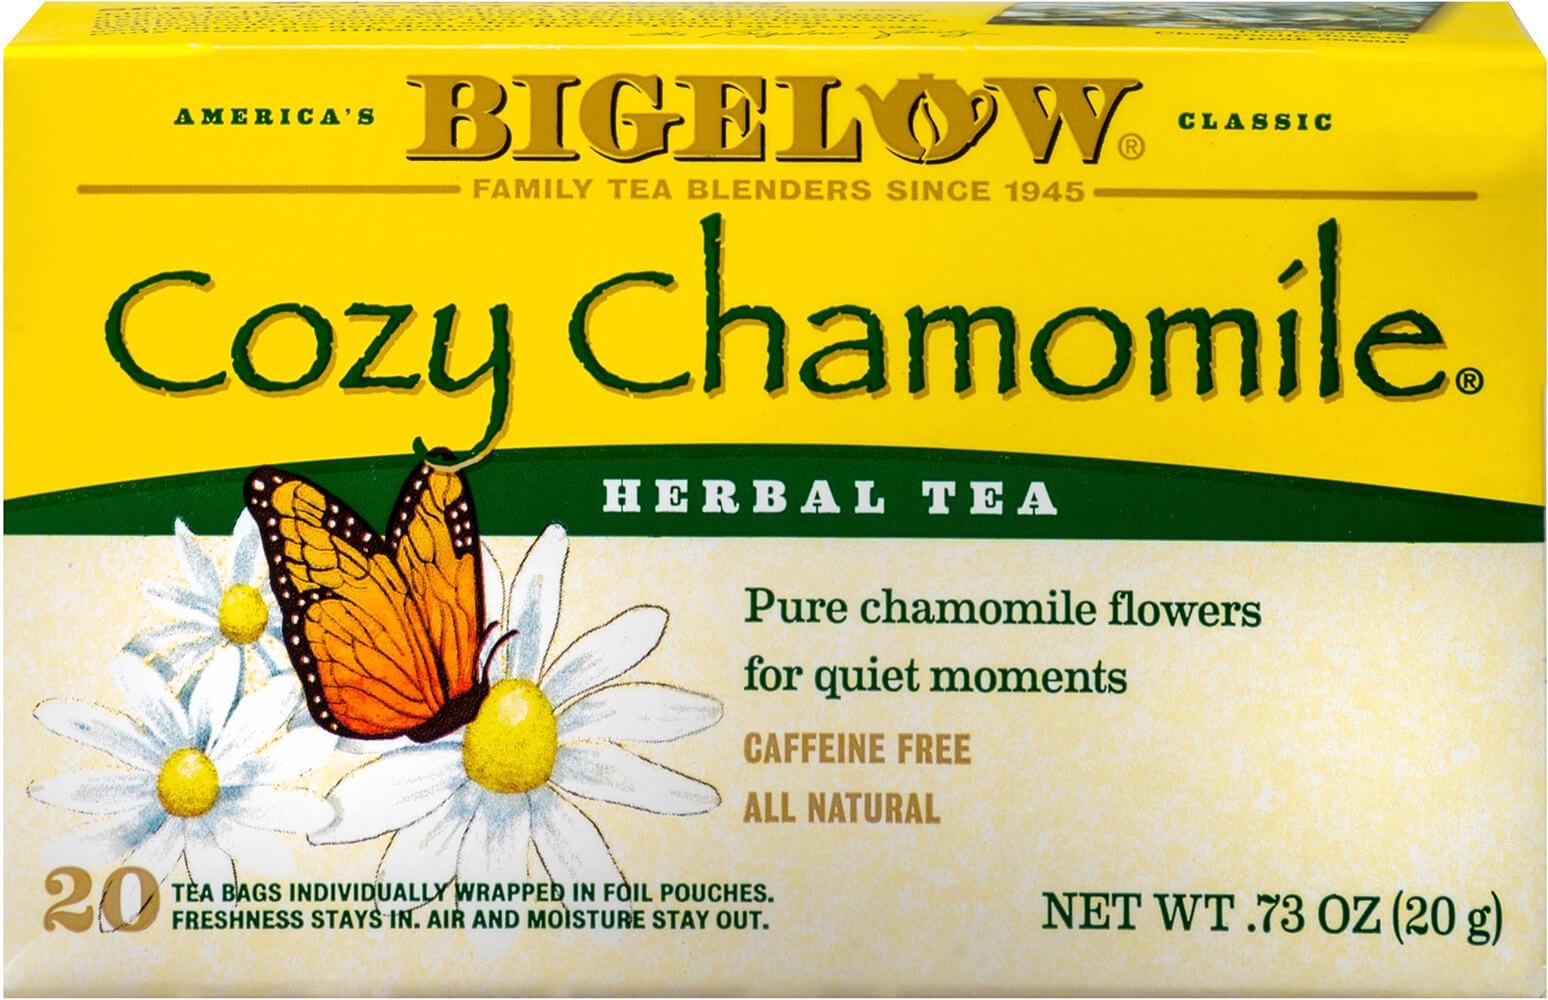 Cozy Chamomile Herb Tea